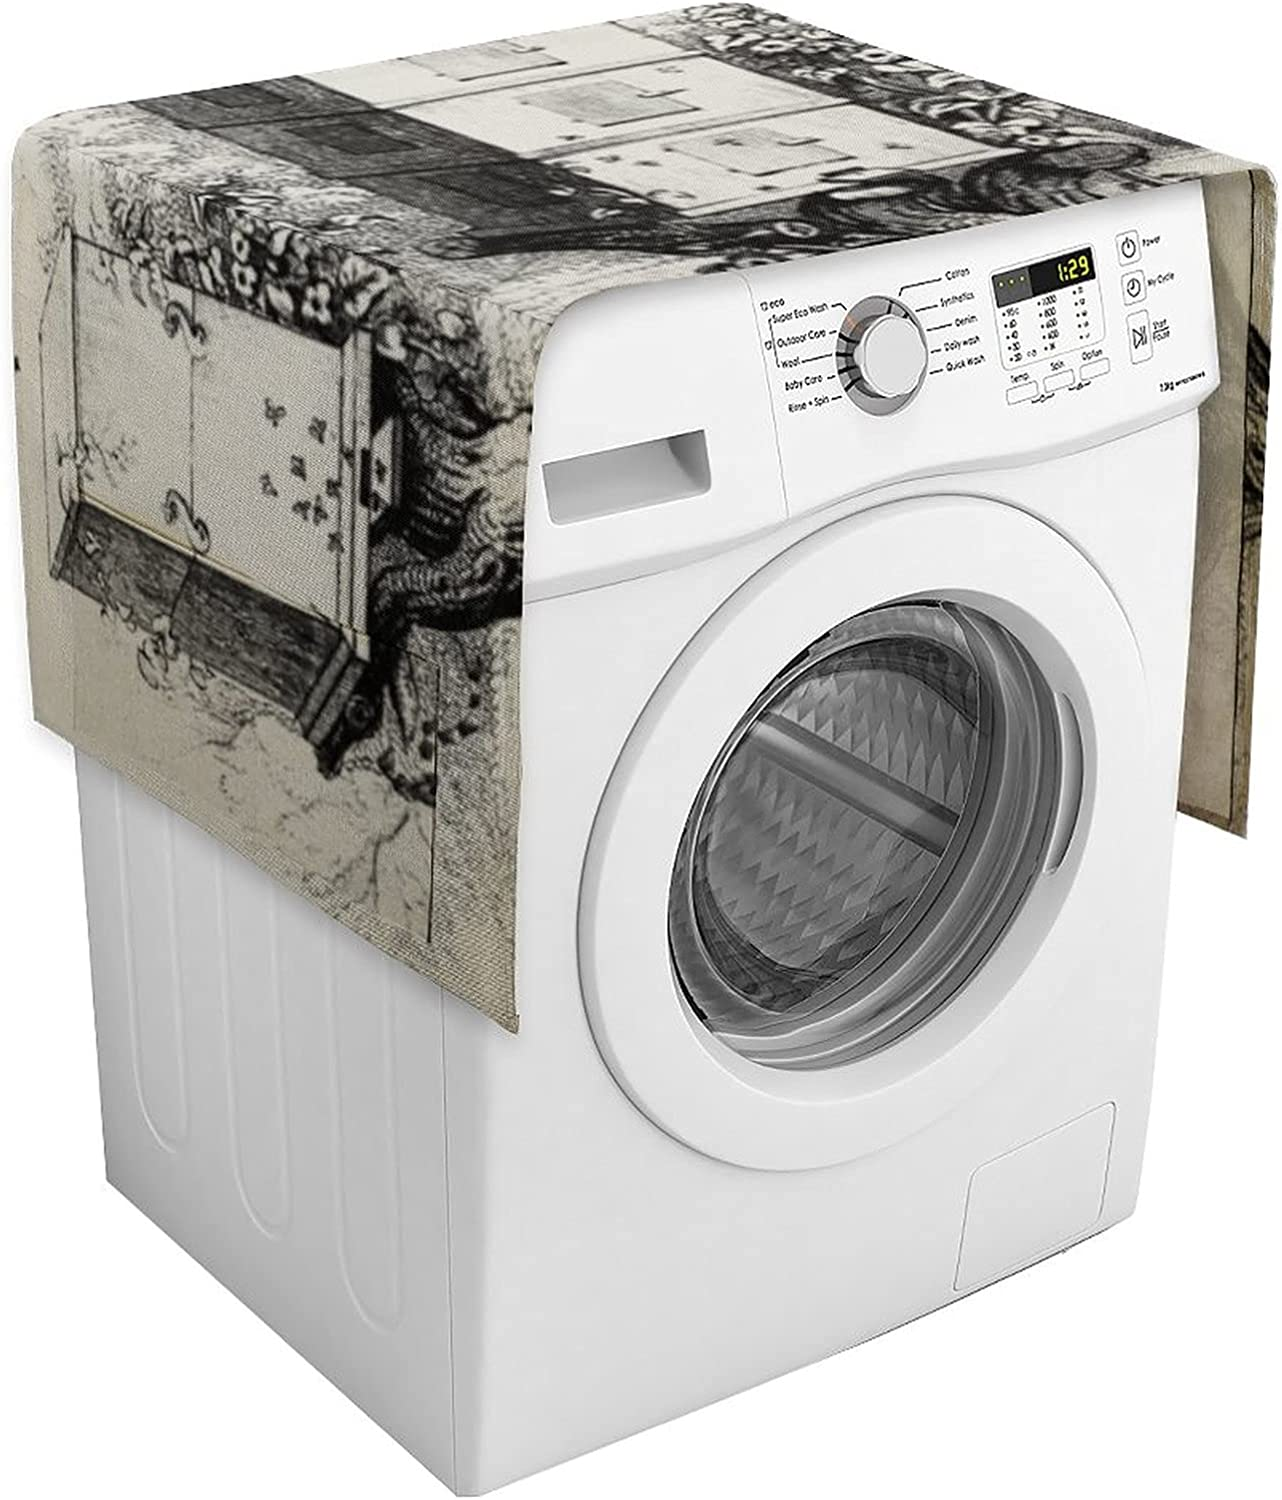 Ranking TOP1 Multi-Purpose Washing Machine Popularity Covers Protector Appliance Washer